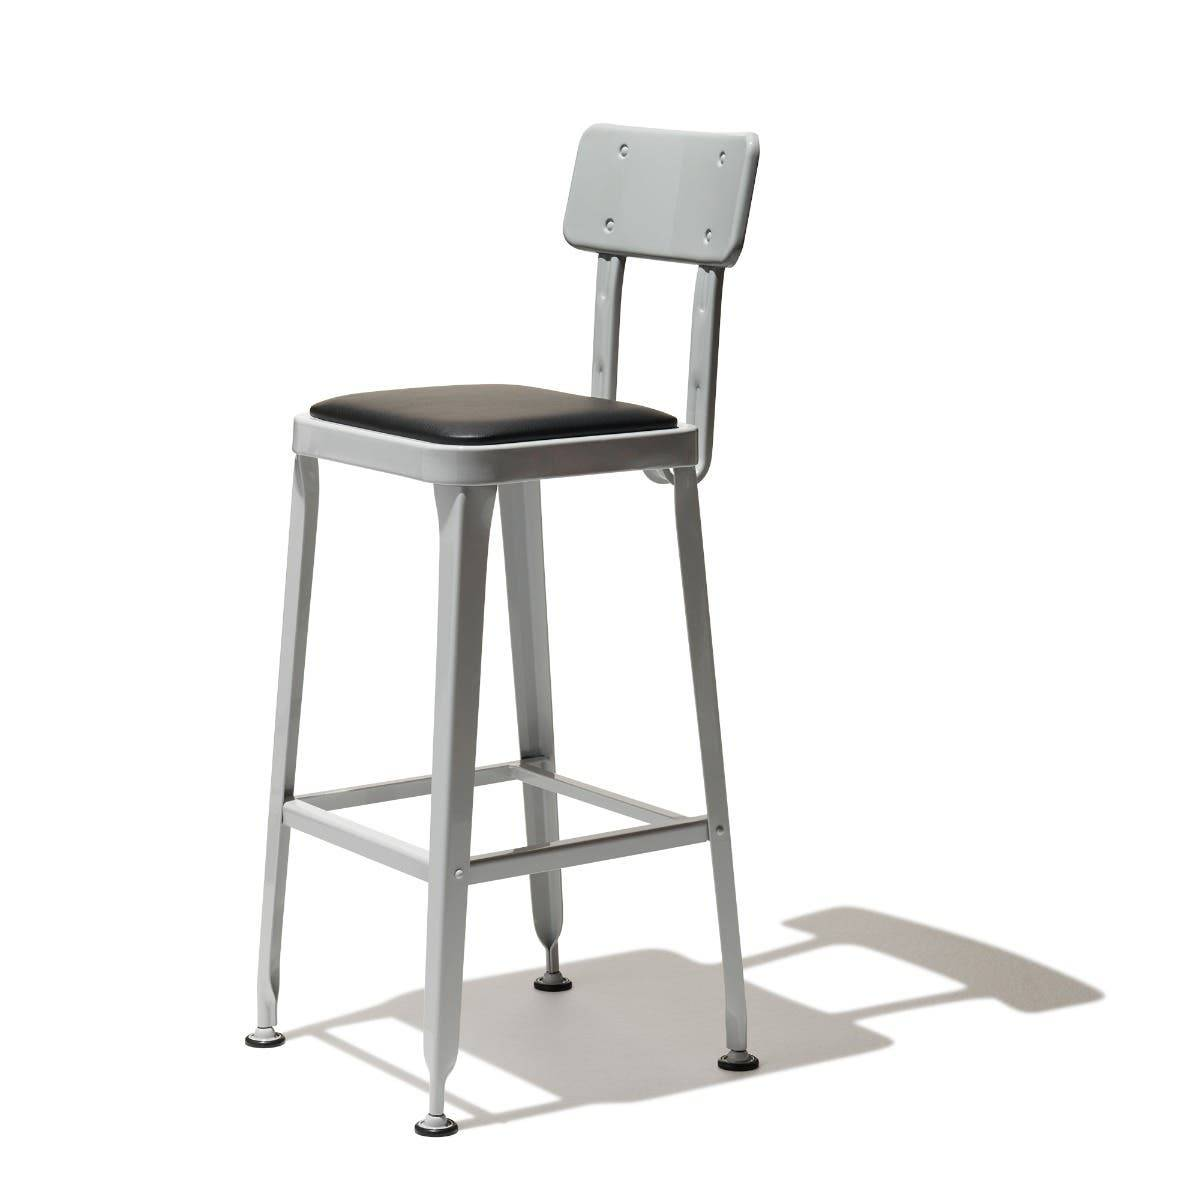 Industry West Octane Bar Stool